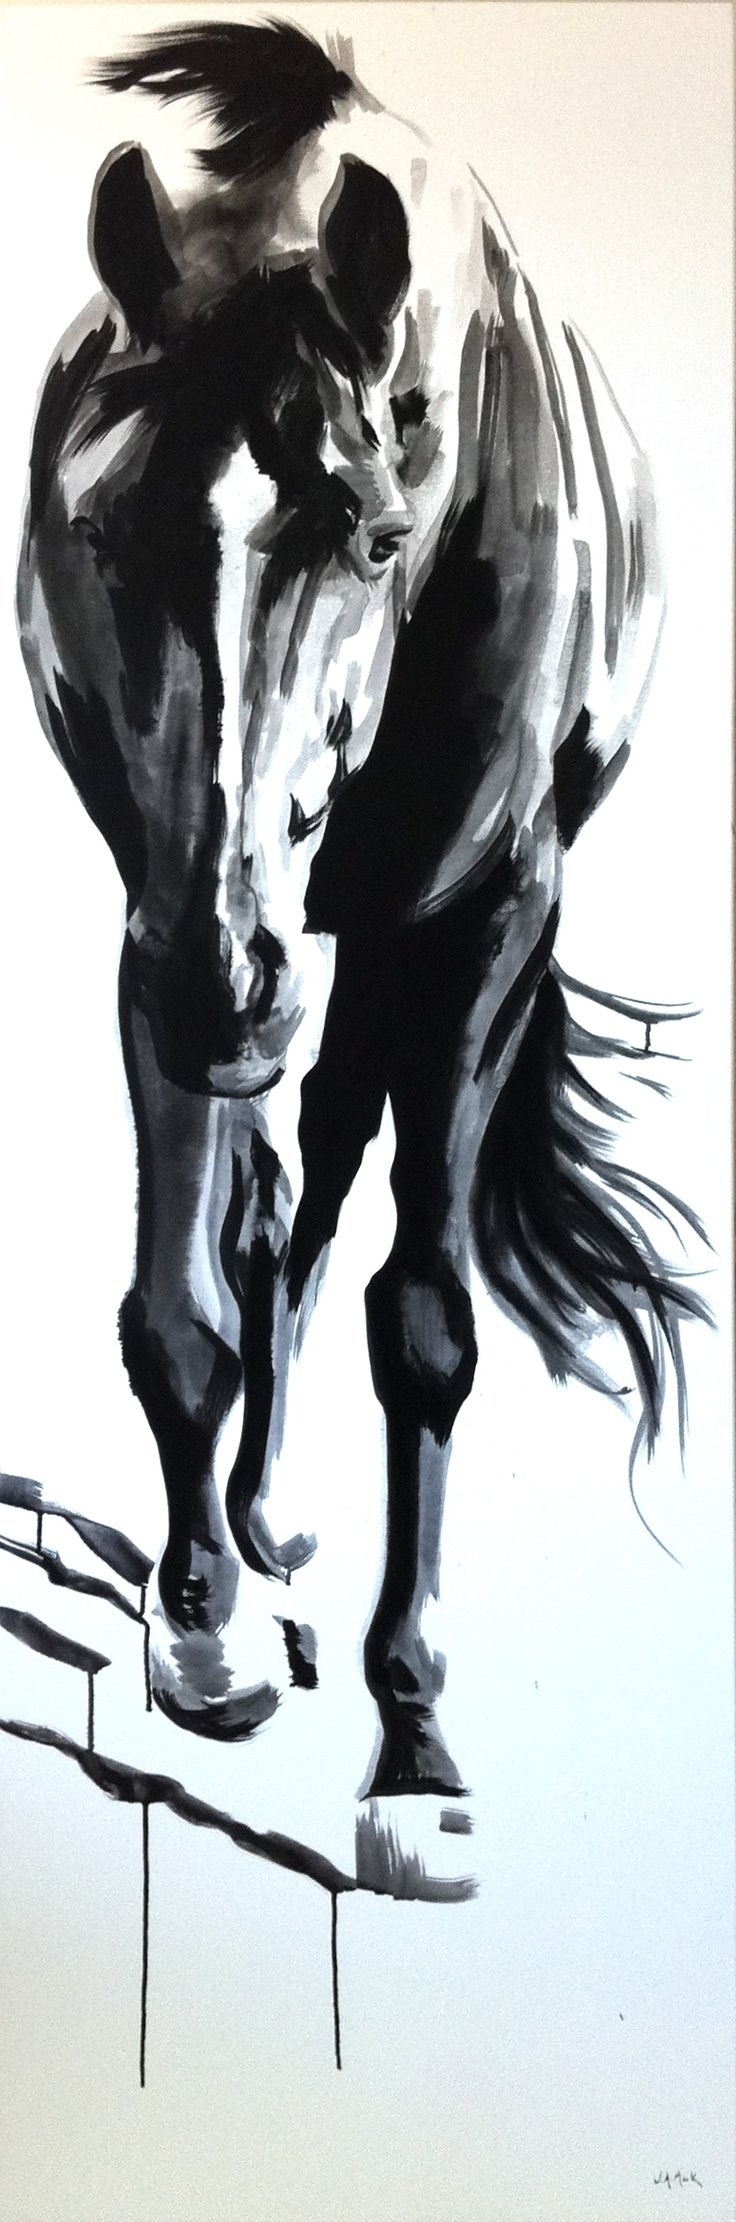 "Horse art Shasta By jennifer mack 72""x24""  India Ink on Canvas SOLD www.jmackfineart.com"